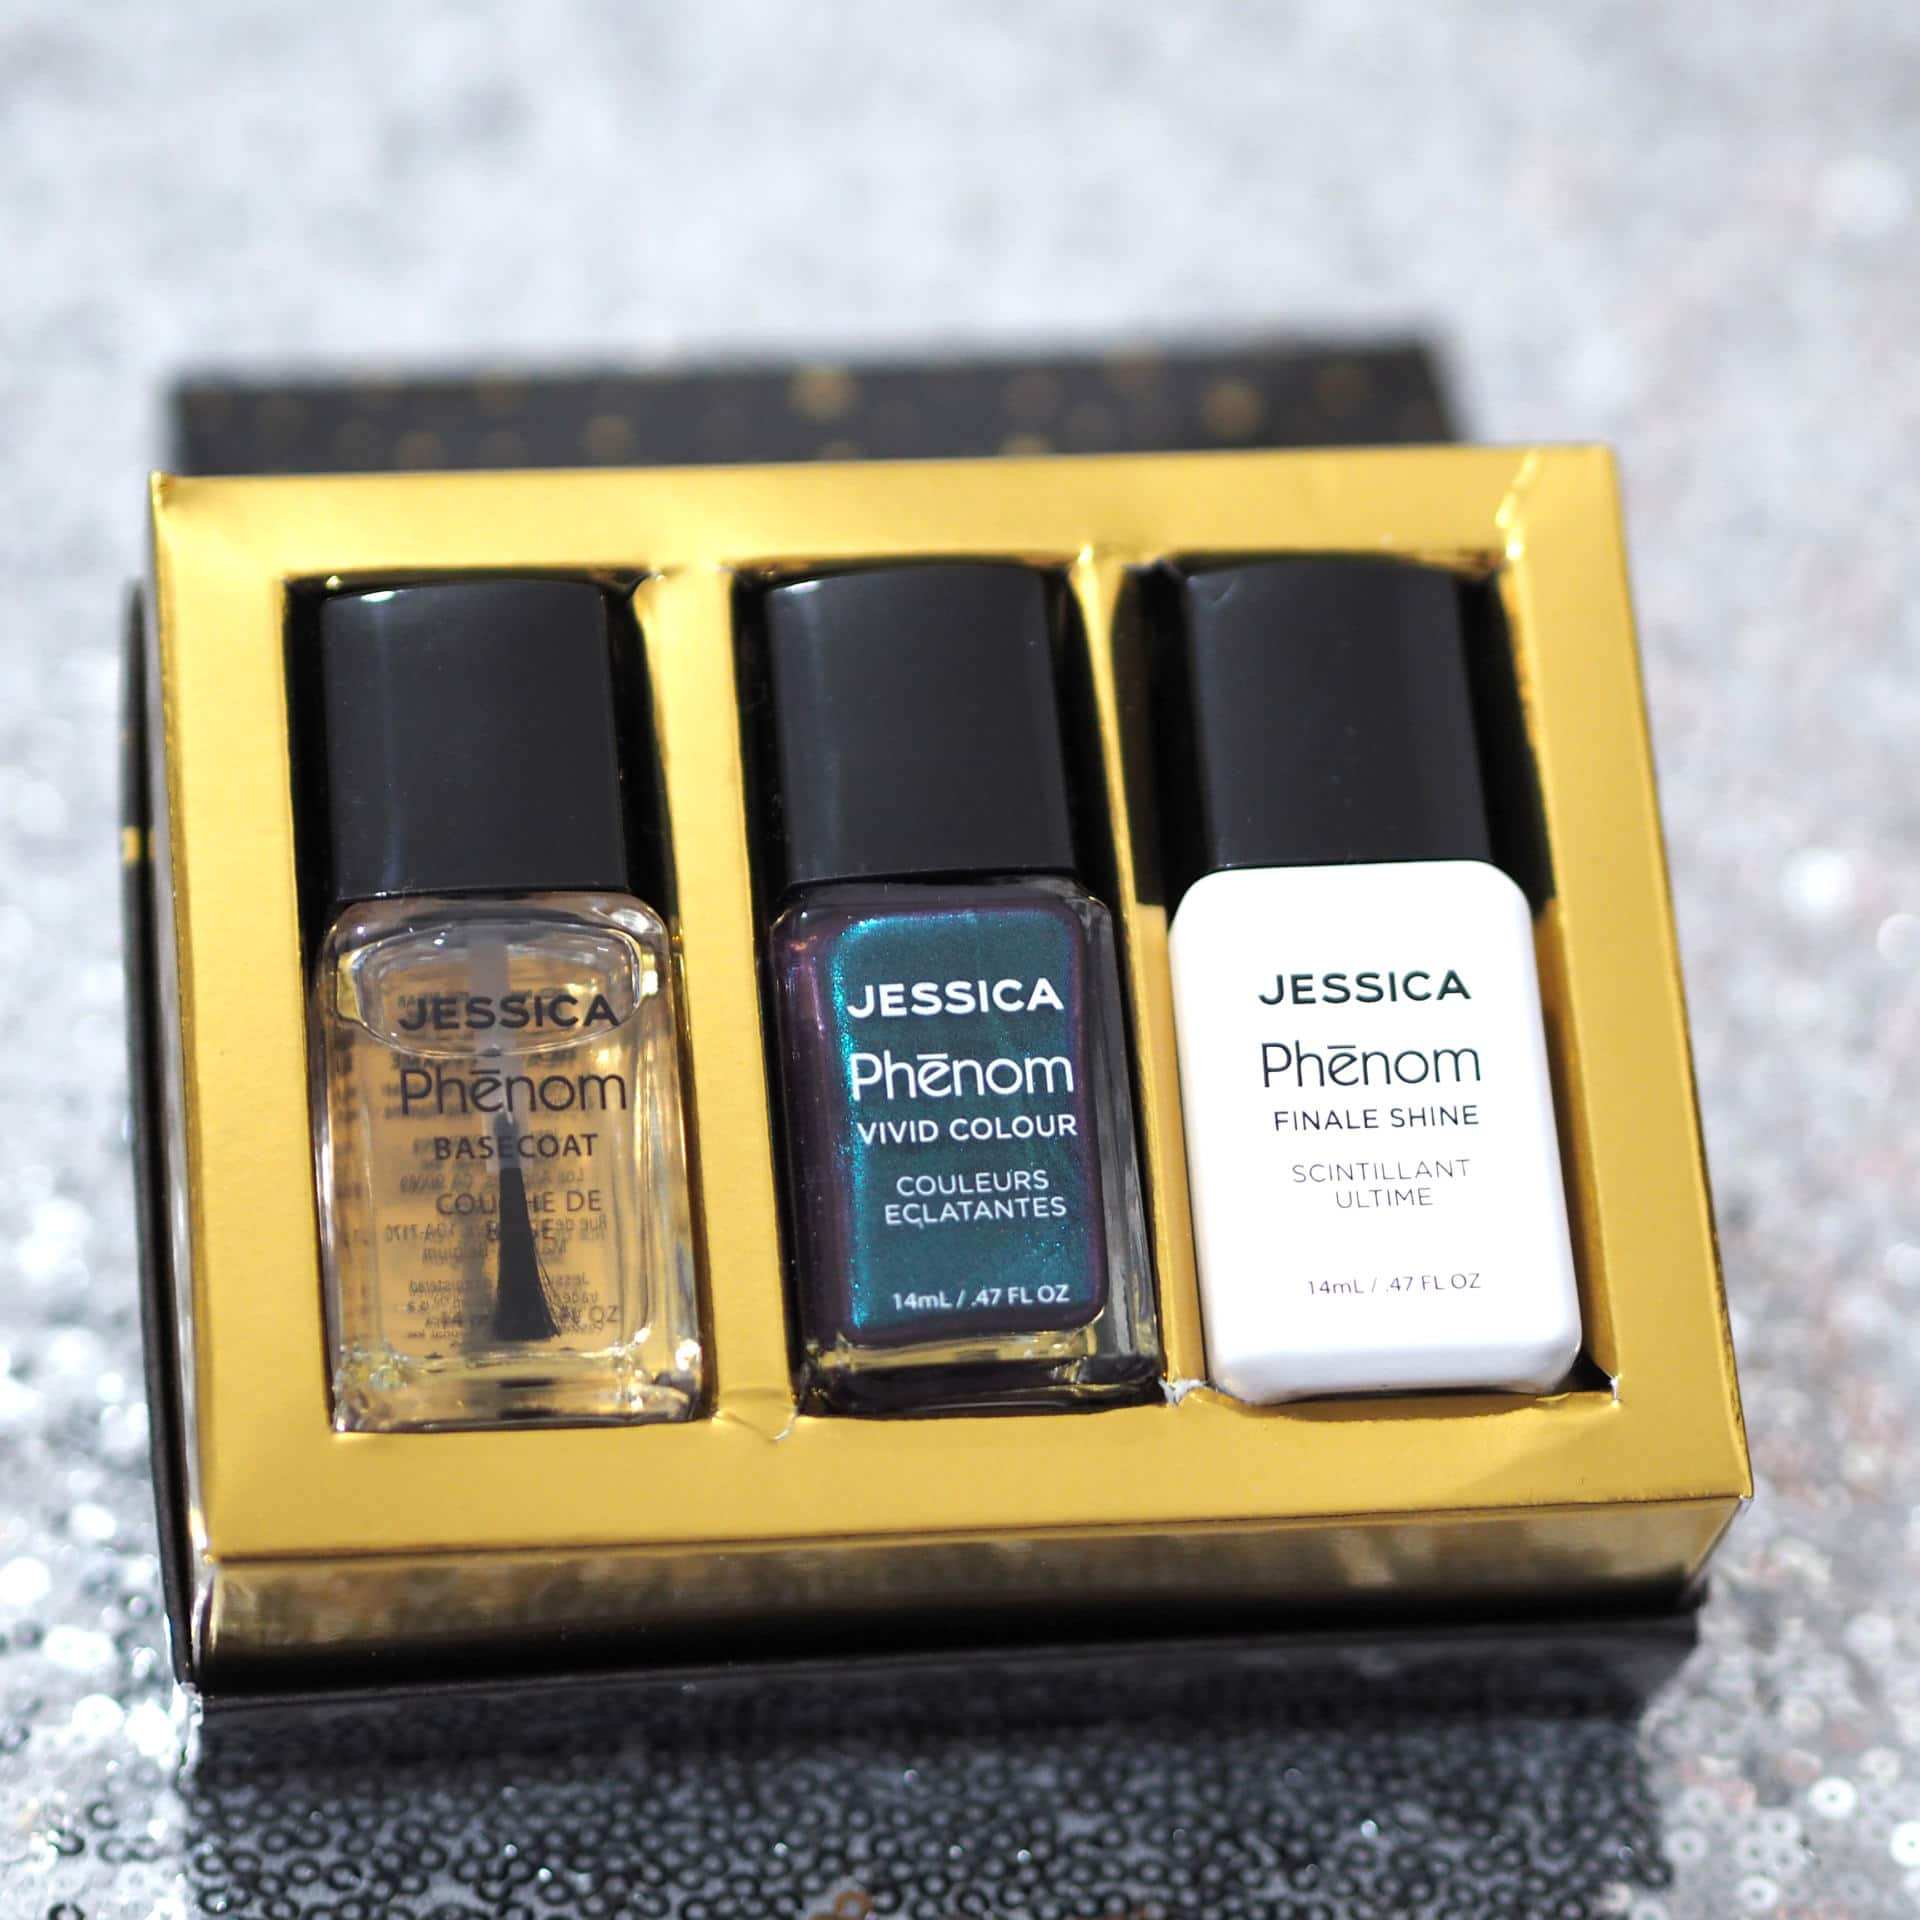 Jessica Cosmetics Arctic Wear Gift Sets Review and Swatches